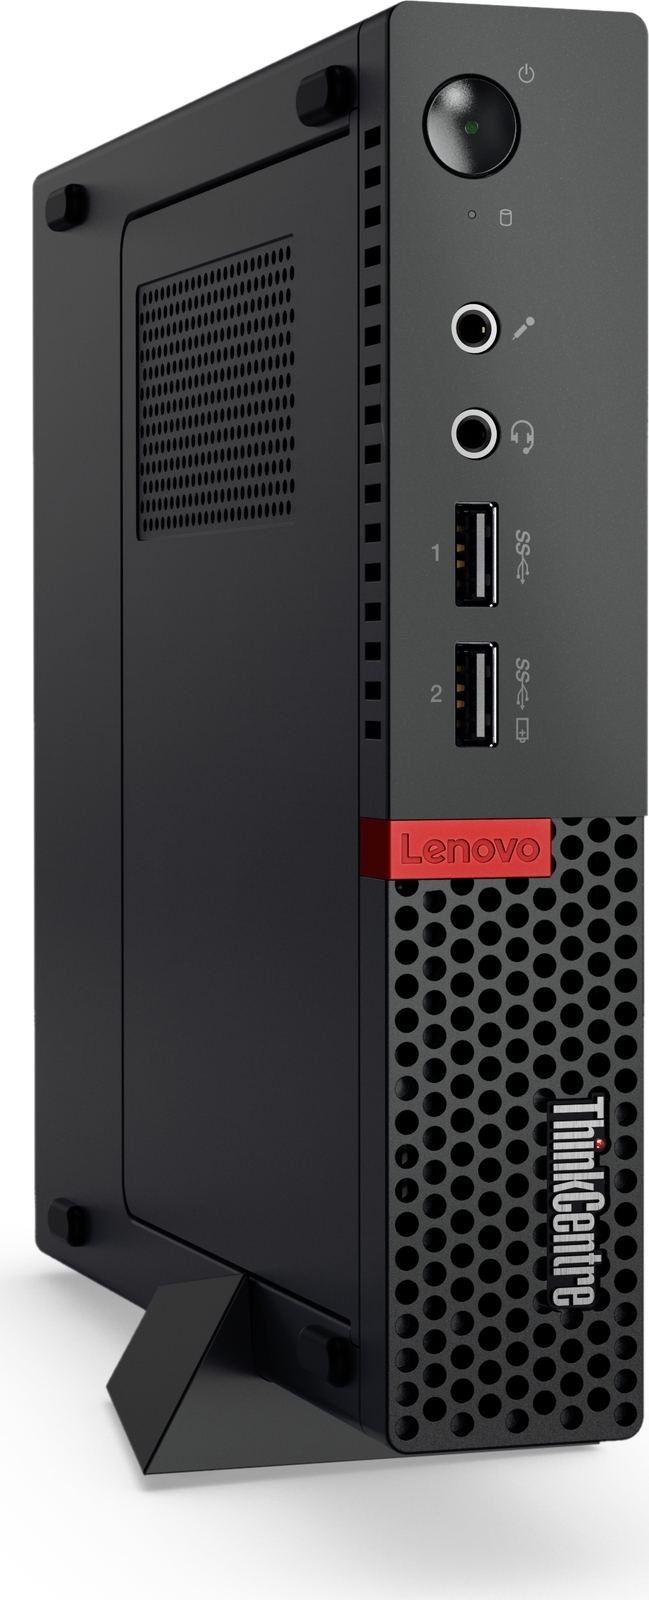 ПК Lenovo ThinkCentre M710q Tiny slim i5 7400T/4Gb/1Tb/HDG630/W10Pro64/kb/m/черный пк lenovo thinkcentre m710q tiny slim i3 7100t 4gb 500gb 7 2k hdg630 w10pro64 kb m черный